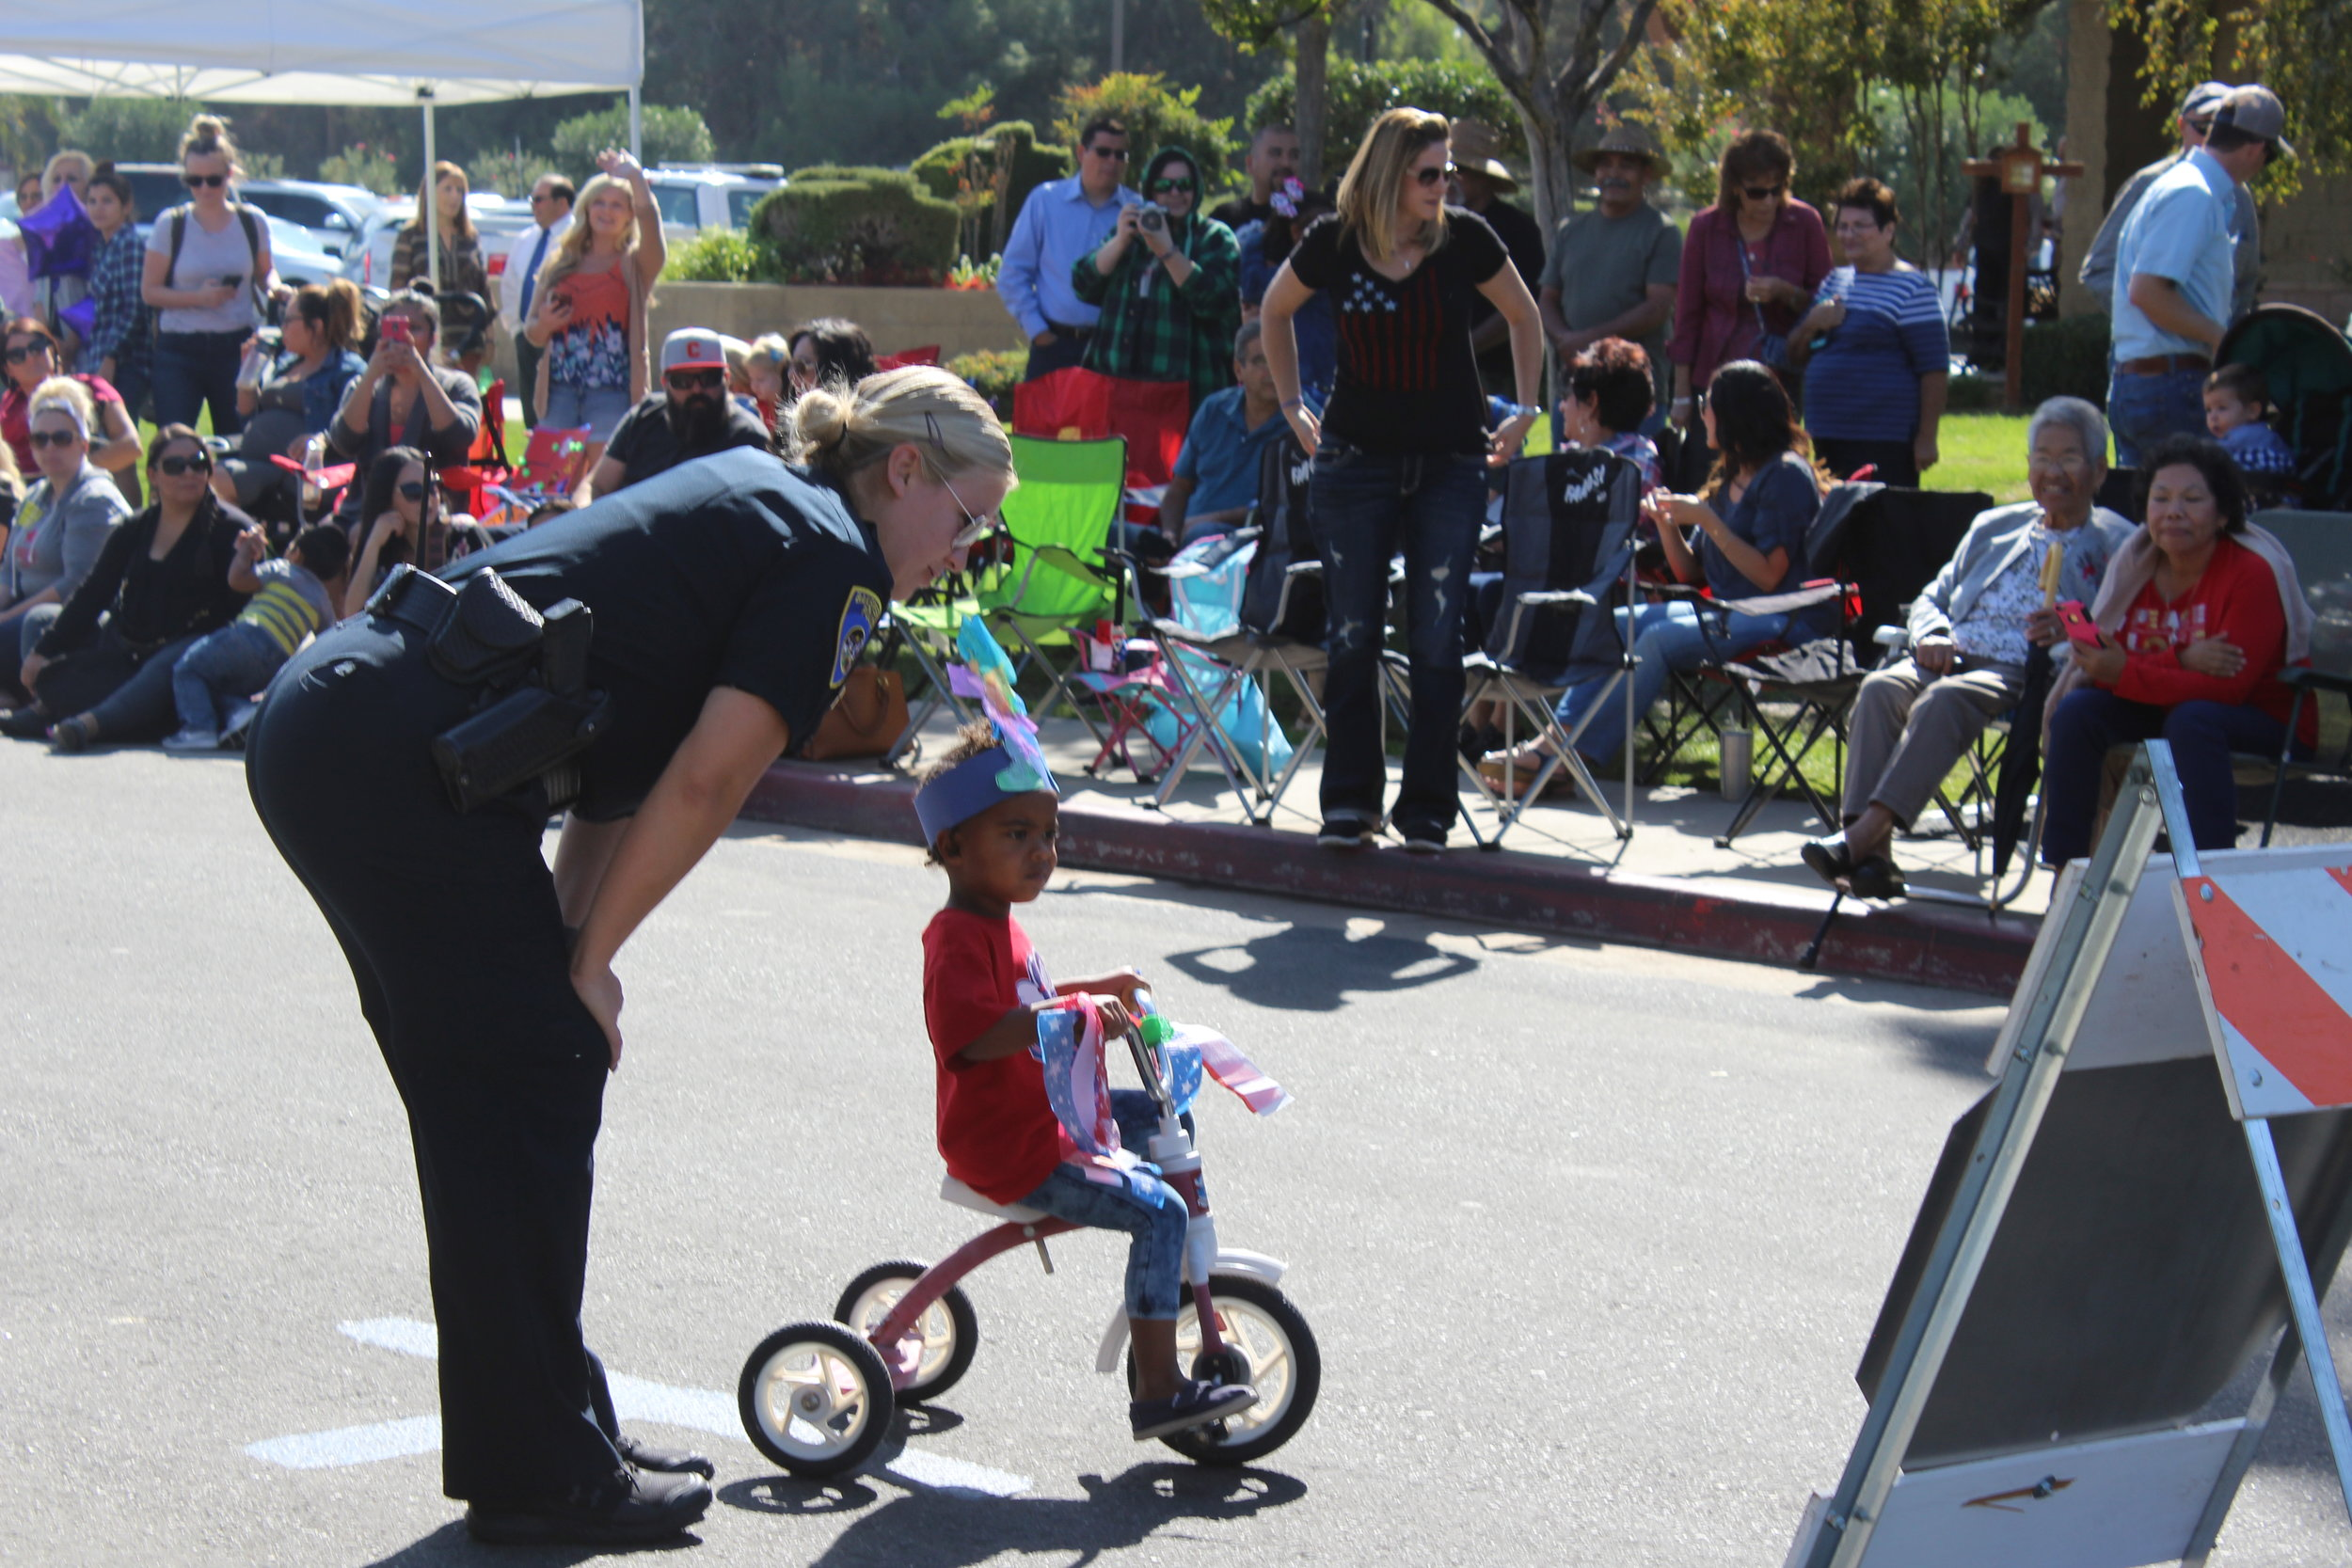 Bakersfield Police Department Safety Bike Rodeo and Patriotic Parade!